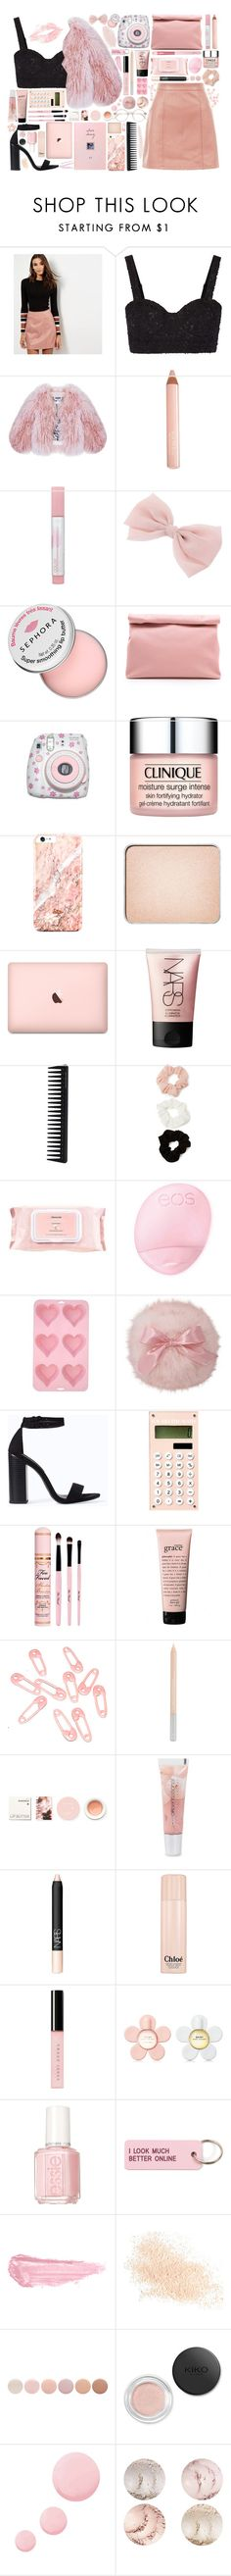 """Untitled #68"" by foteini98 ❤ liked on Polyvore featuring New Look, Alice + Olivia, Florence Bridge, Trish McEvoy, Maybelline, Sephora Collection, Marie Turnor, Polaroid, Clinique and shu uemura"